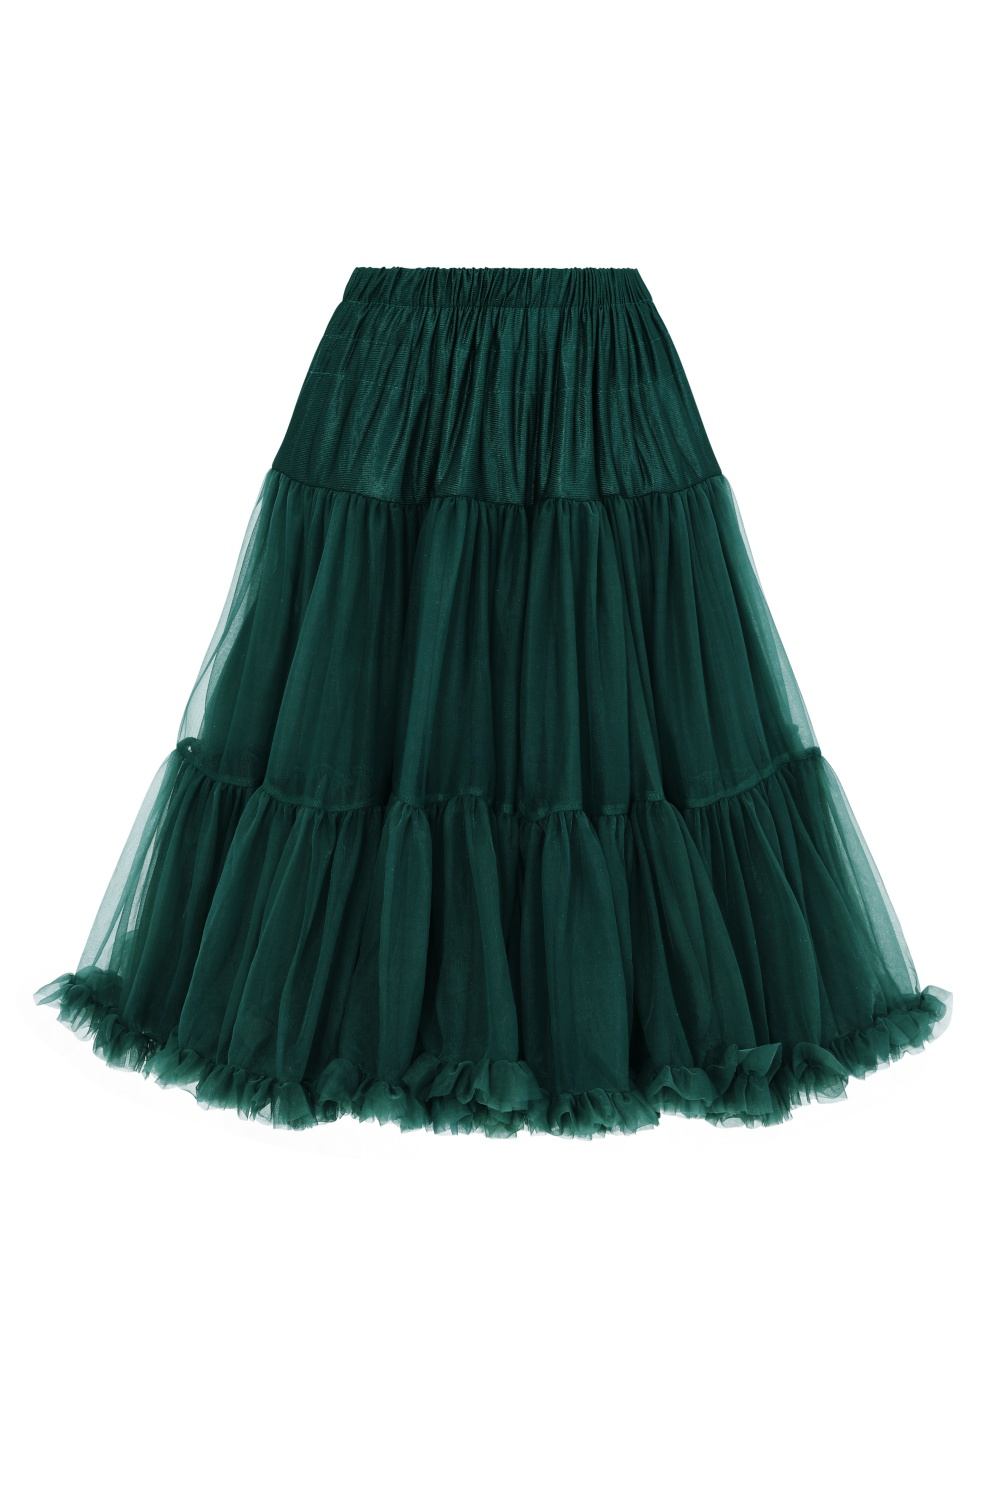 Banned Retro 50s Starlite Bottle Green Petticoat